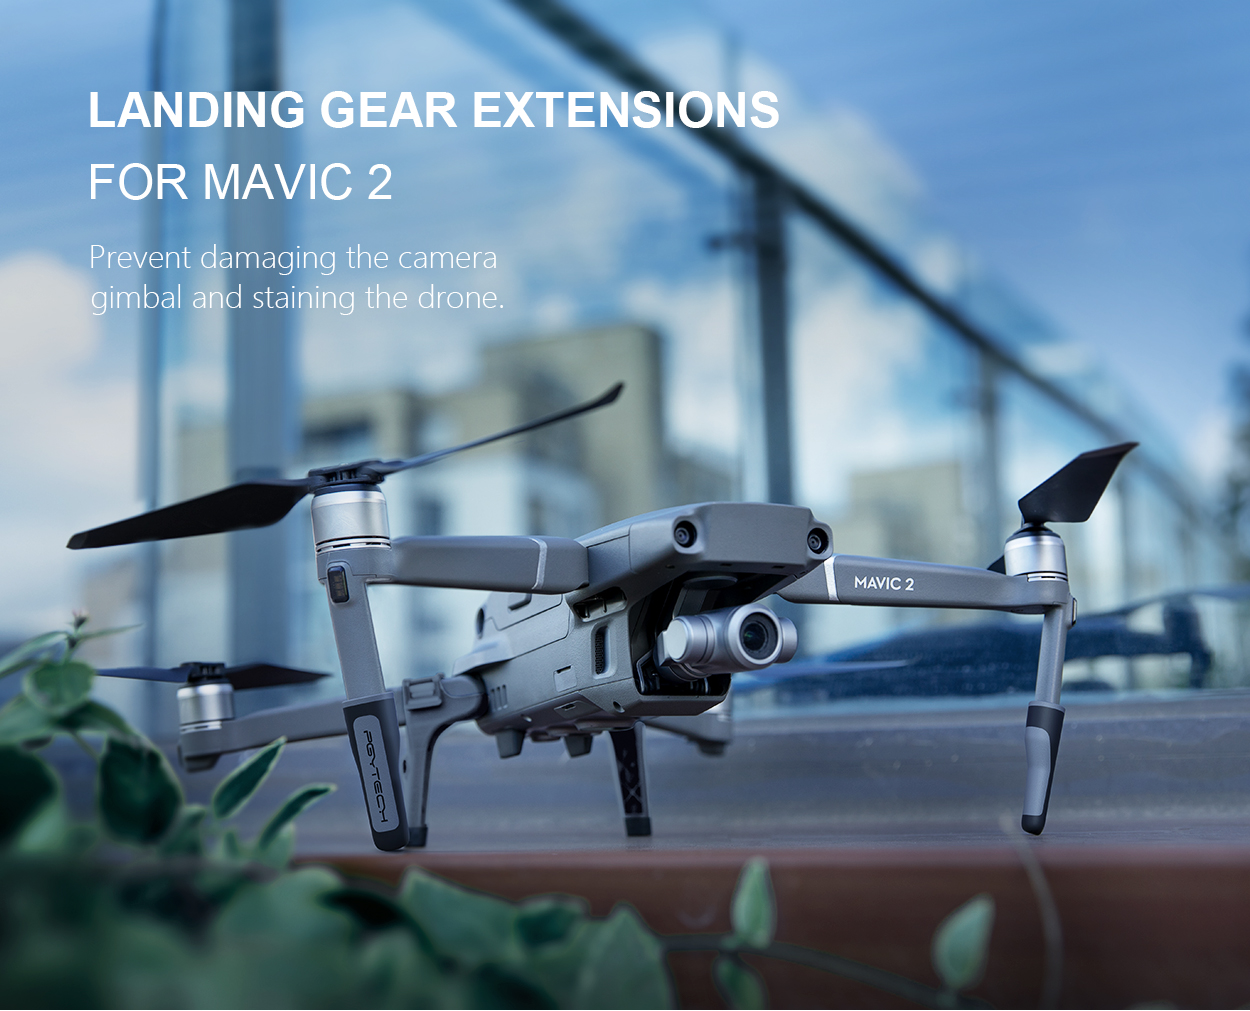 LANDING GEAR EXTENSIONS FOR MAVIC 2 | Prevent damaging the camera gimbal and staining the drone.